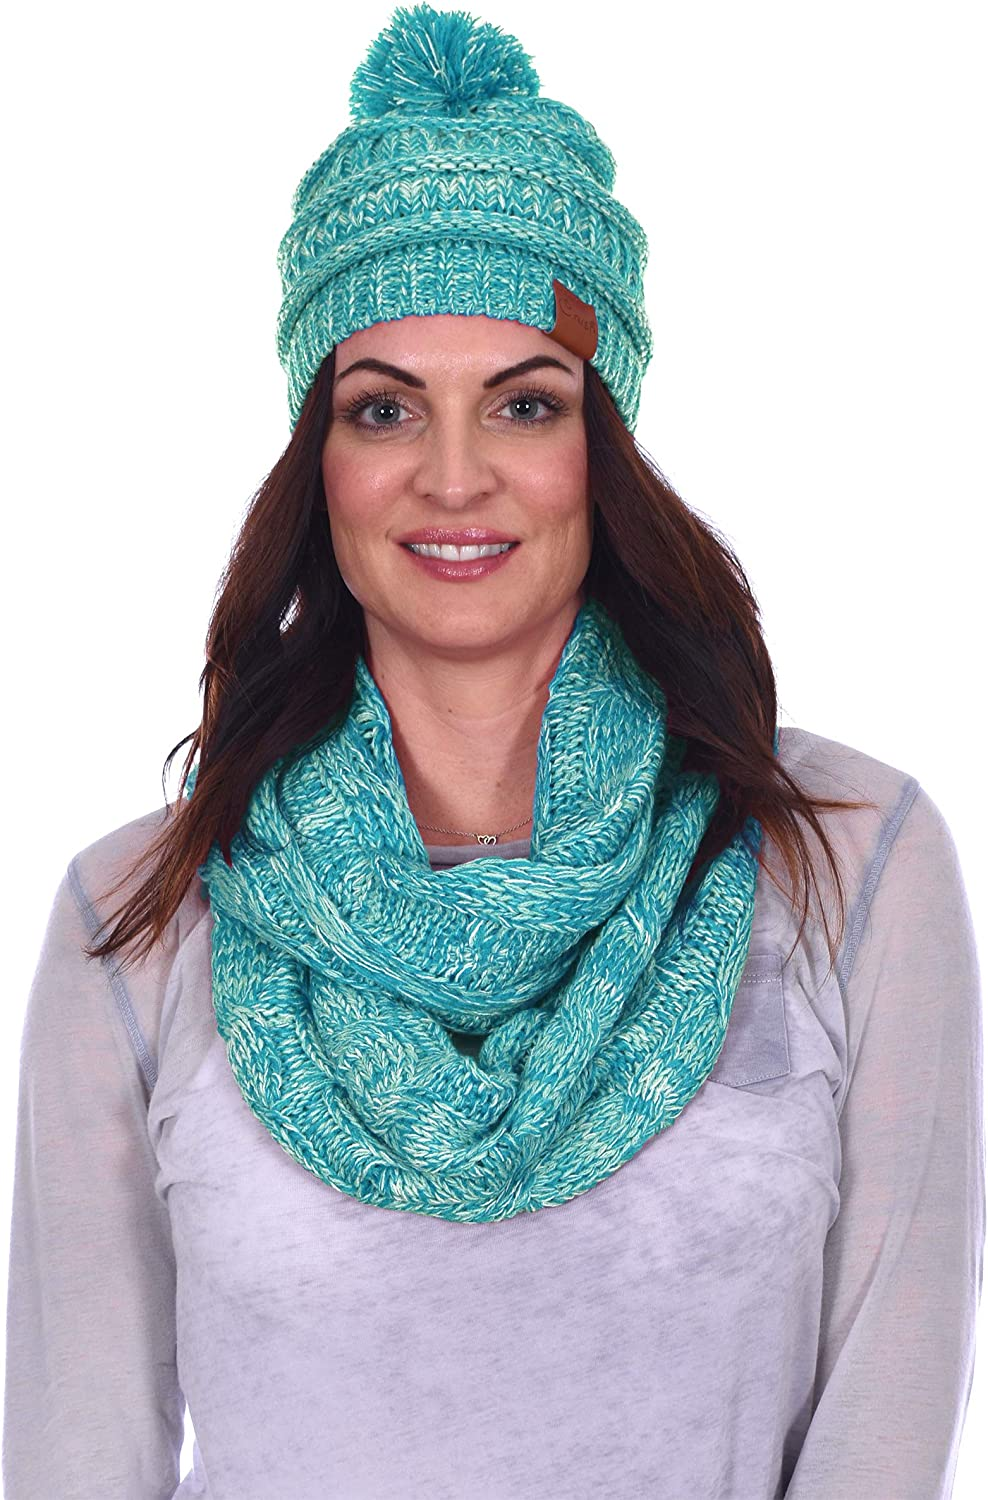 Women's Warm Crocheted Knit Infinity Scarf & Hat Set in 4 Great Fashion Colors